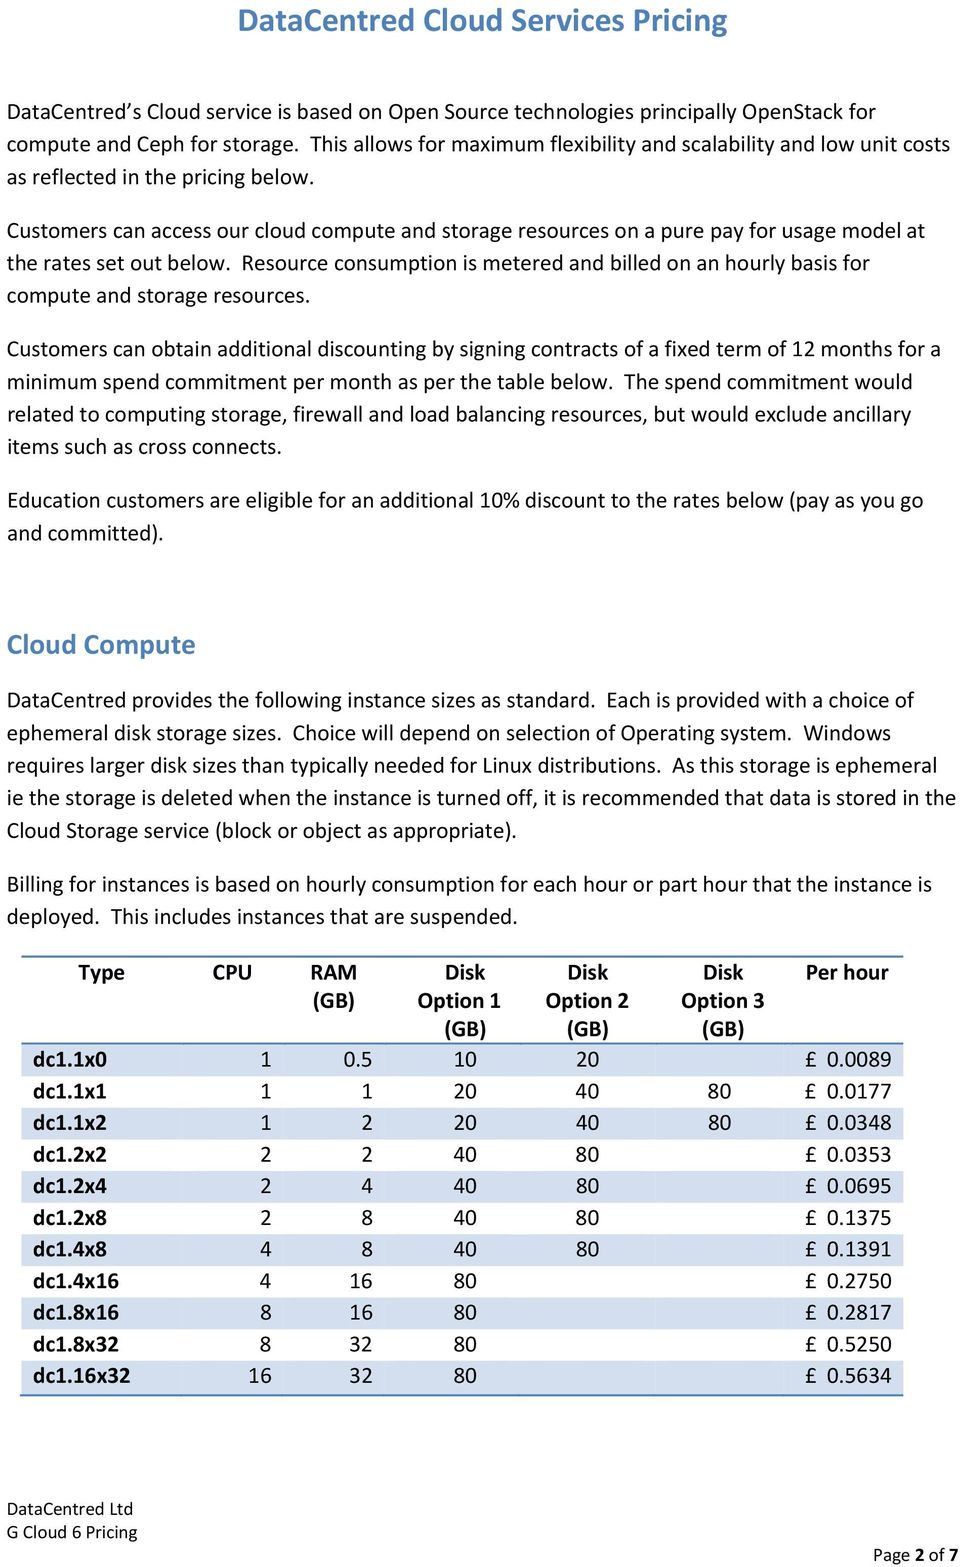 Customers can access our cloud compute and storage resources on a pure pay for usage model at the rates set out below.